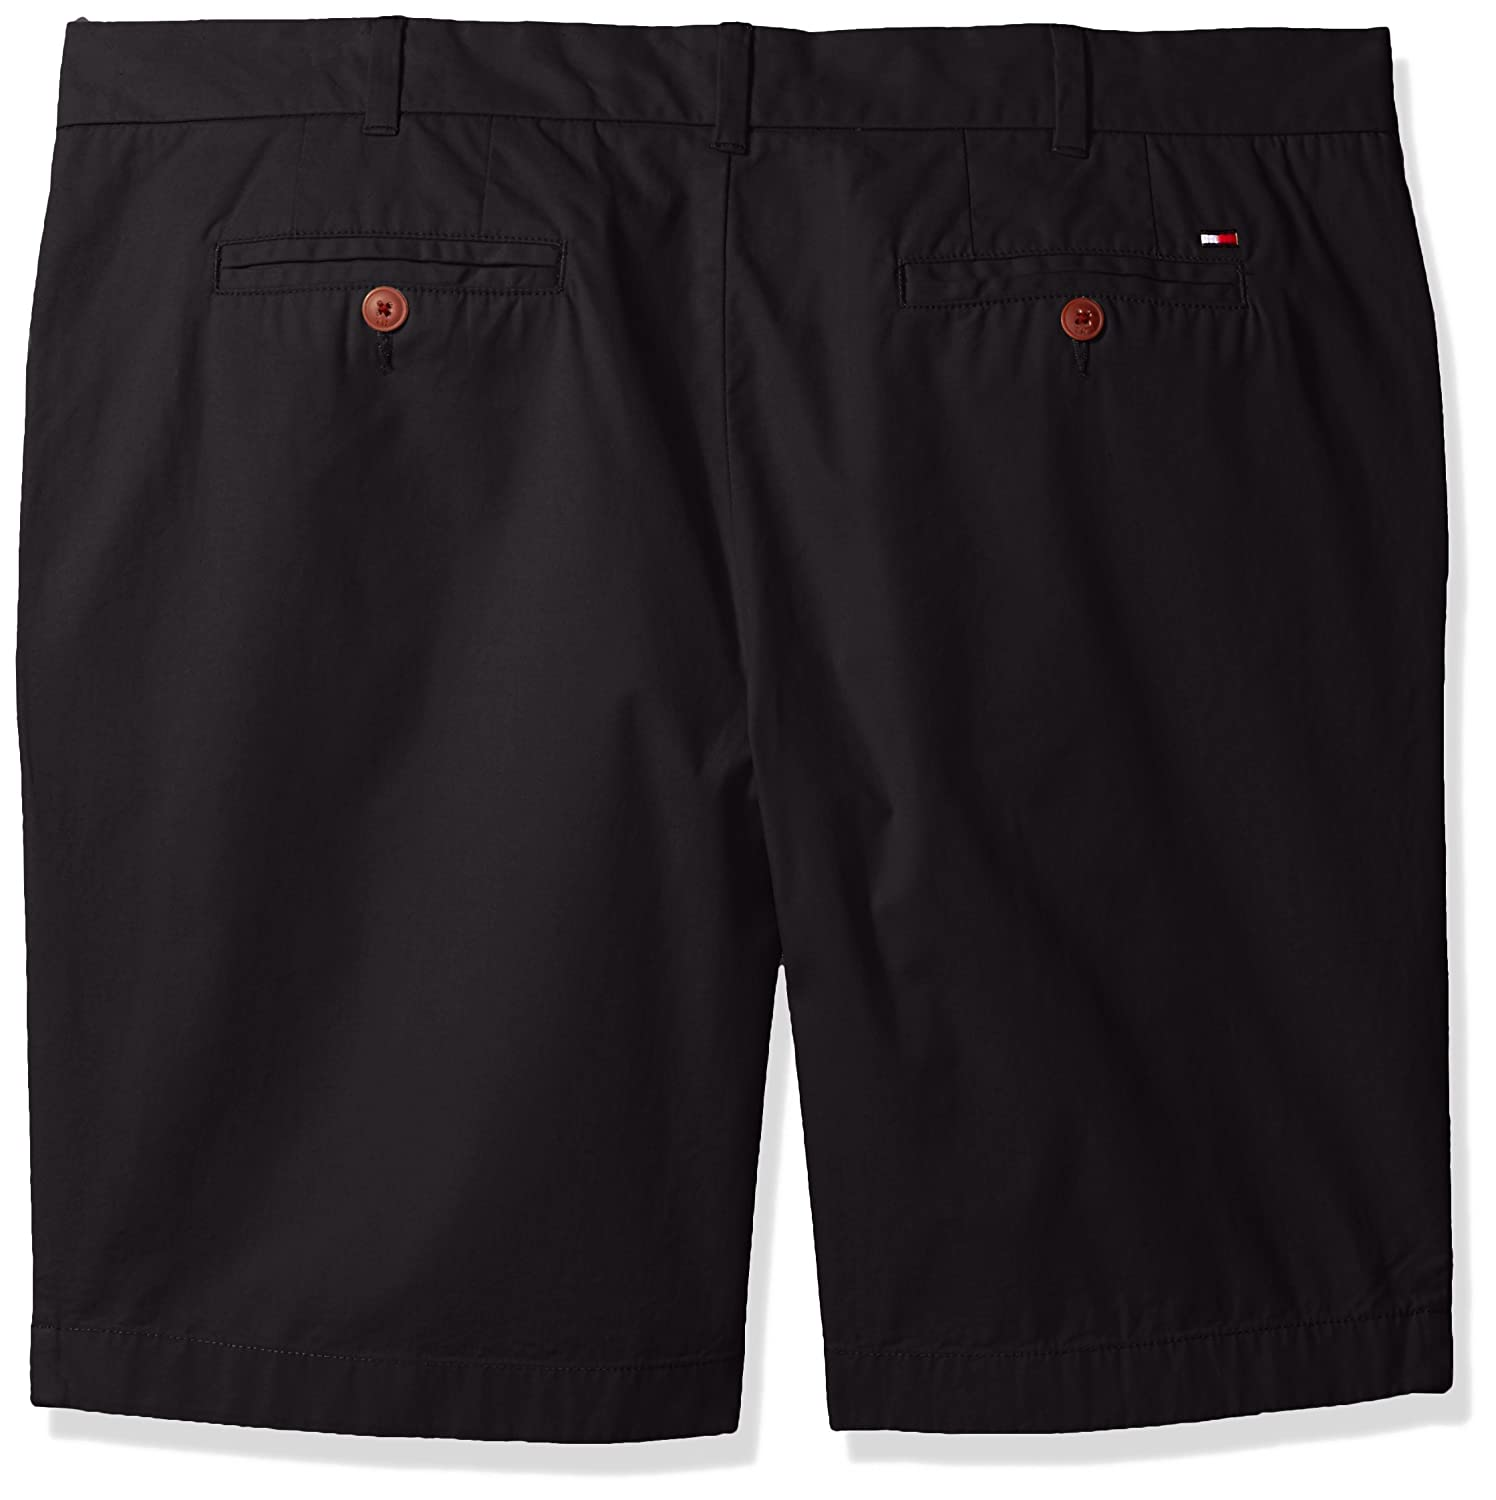 3003d8d9 Tommy Hilfiger Men's Big & Tall Classic Fit Chino Short at Amazon Men's  Clothing store: